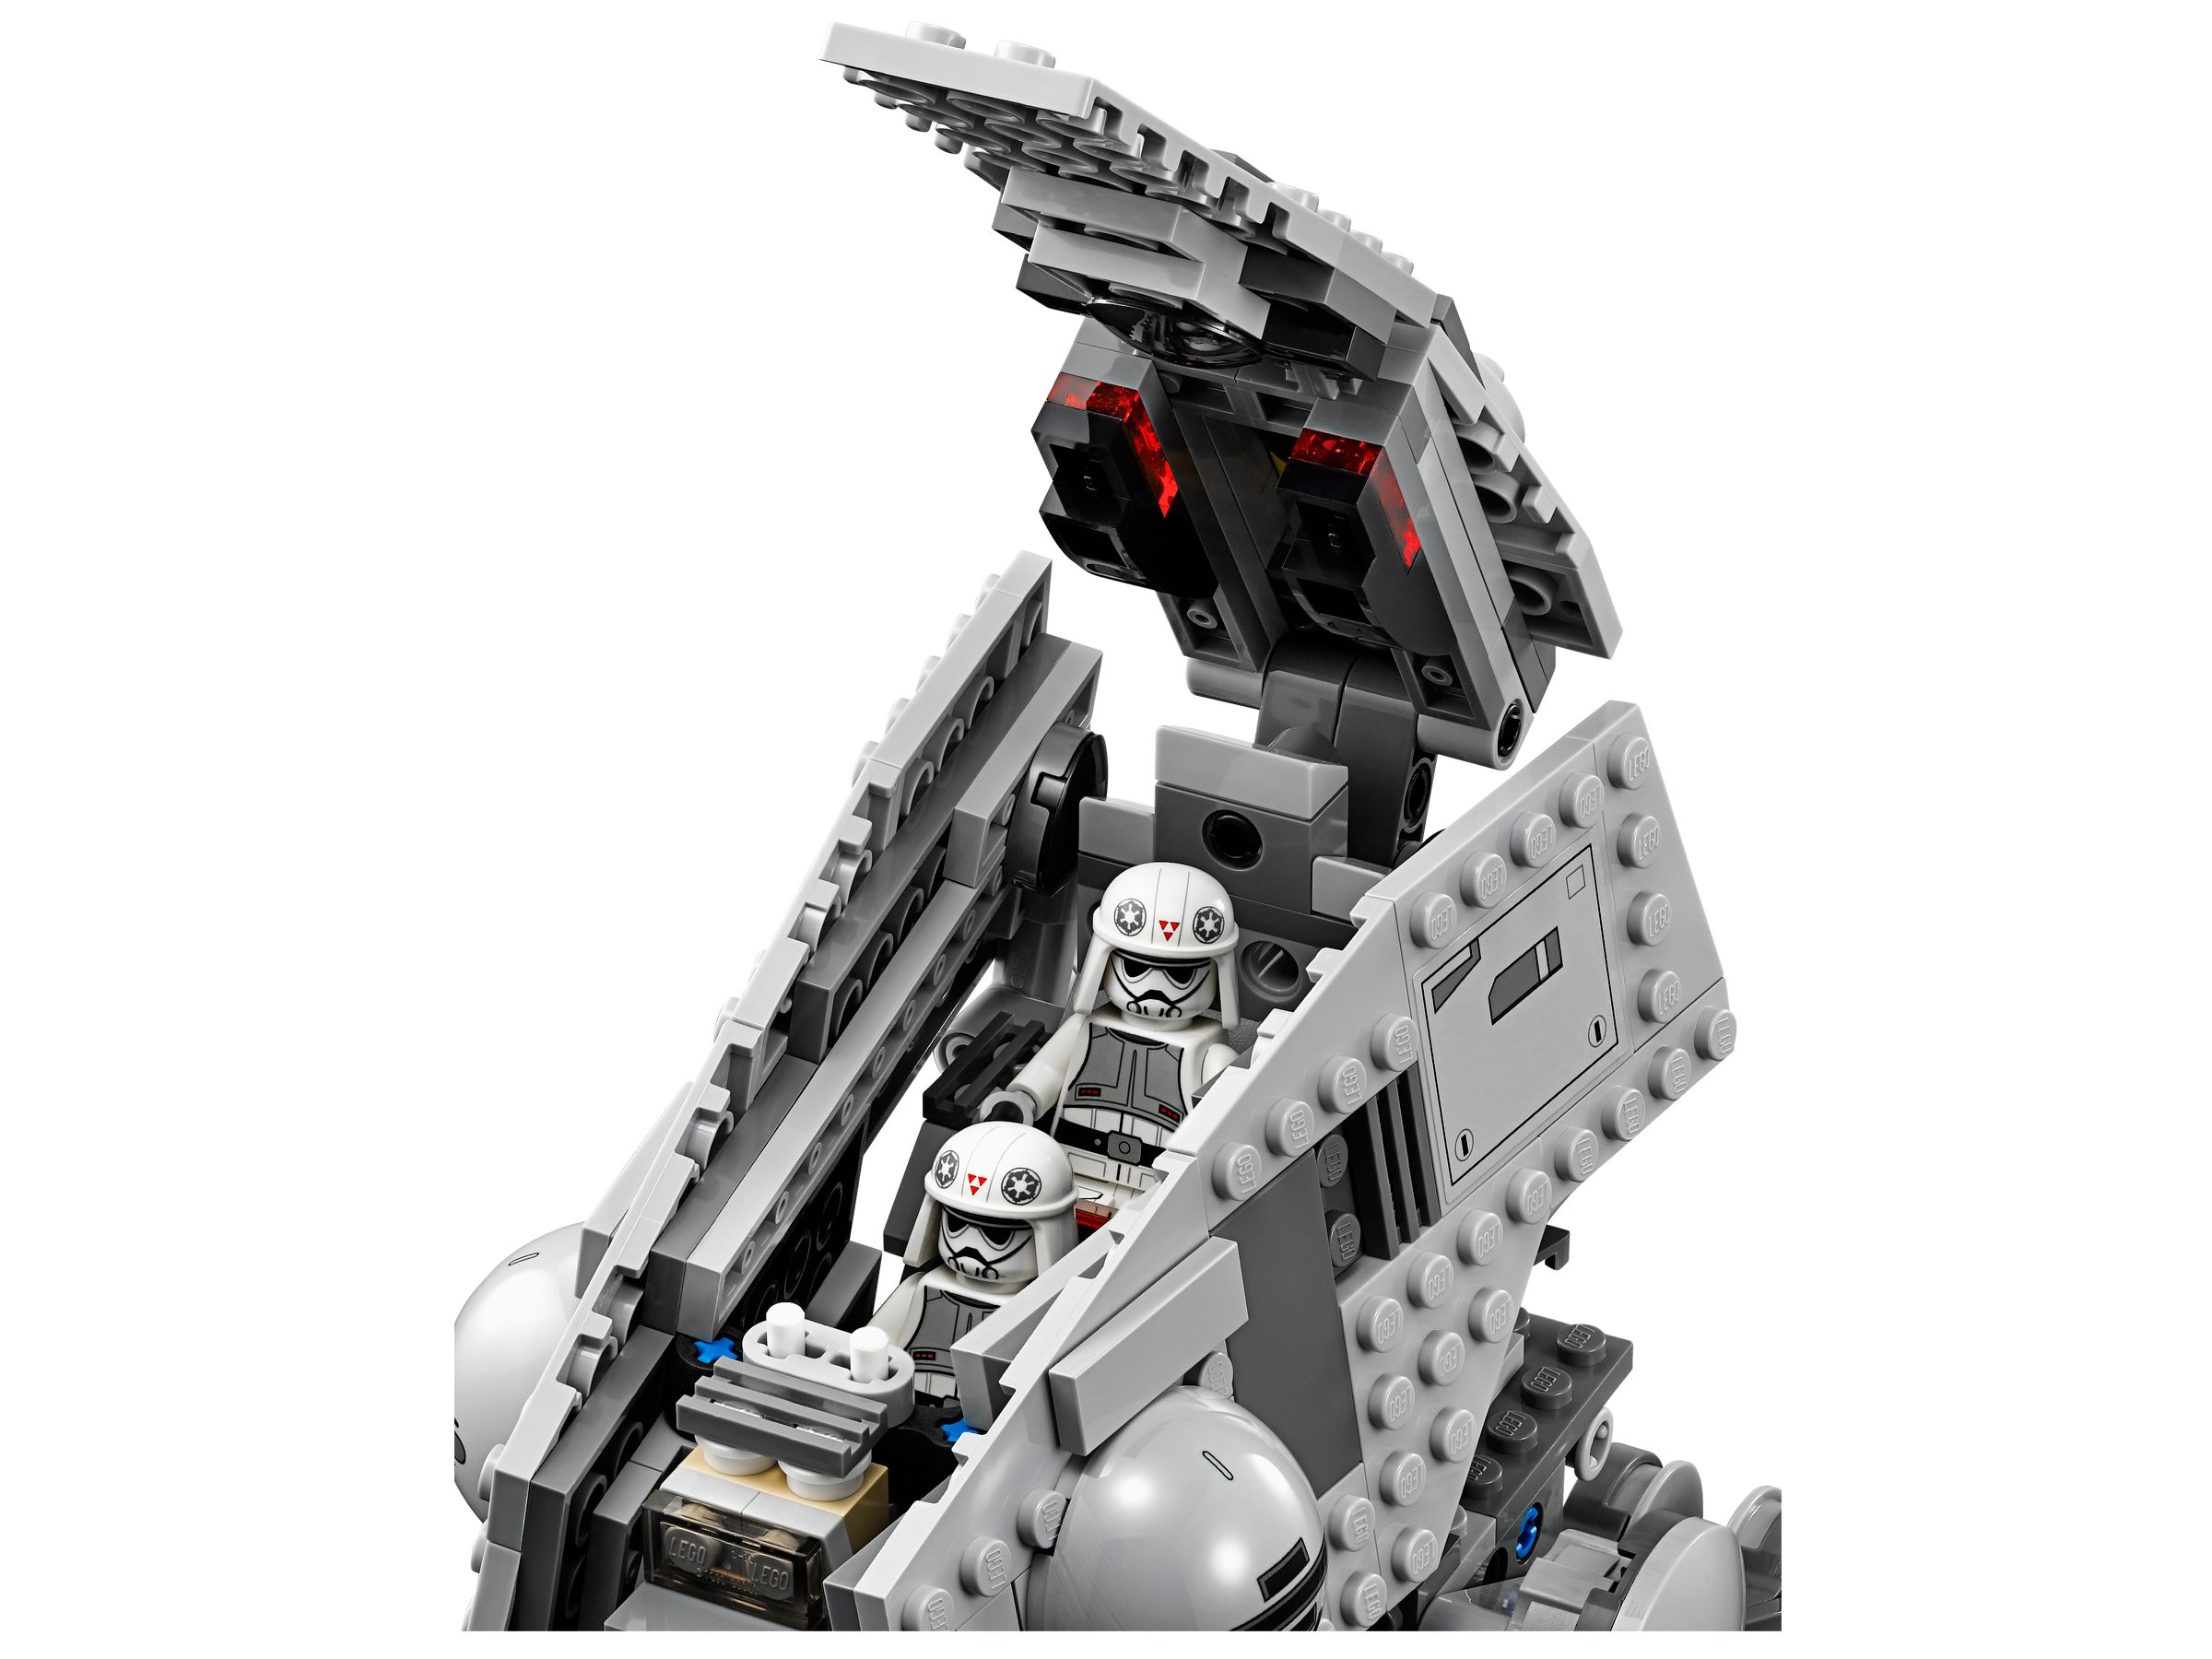 LEGO Star Wars 75083 AT-DP™ LEGO_75083_alt3.jpg